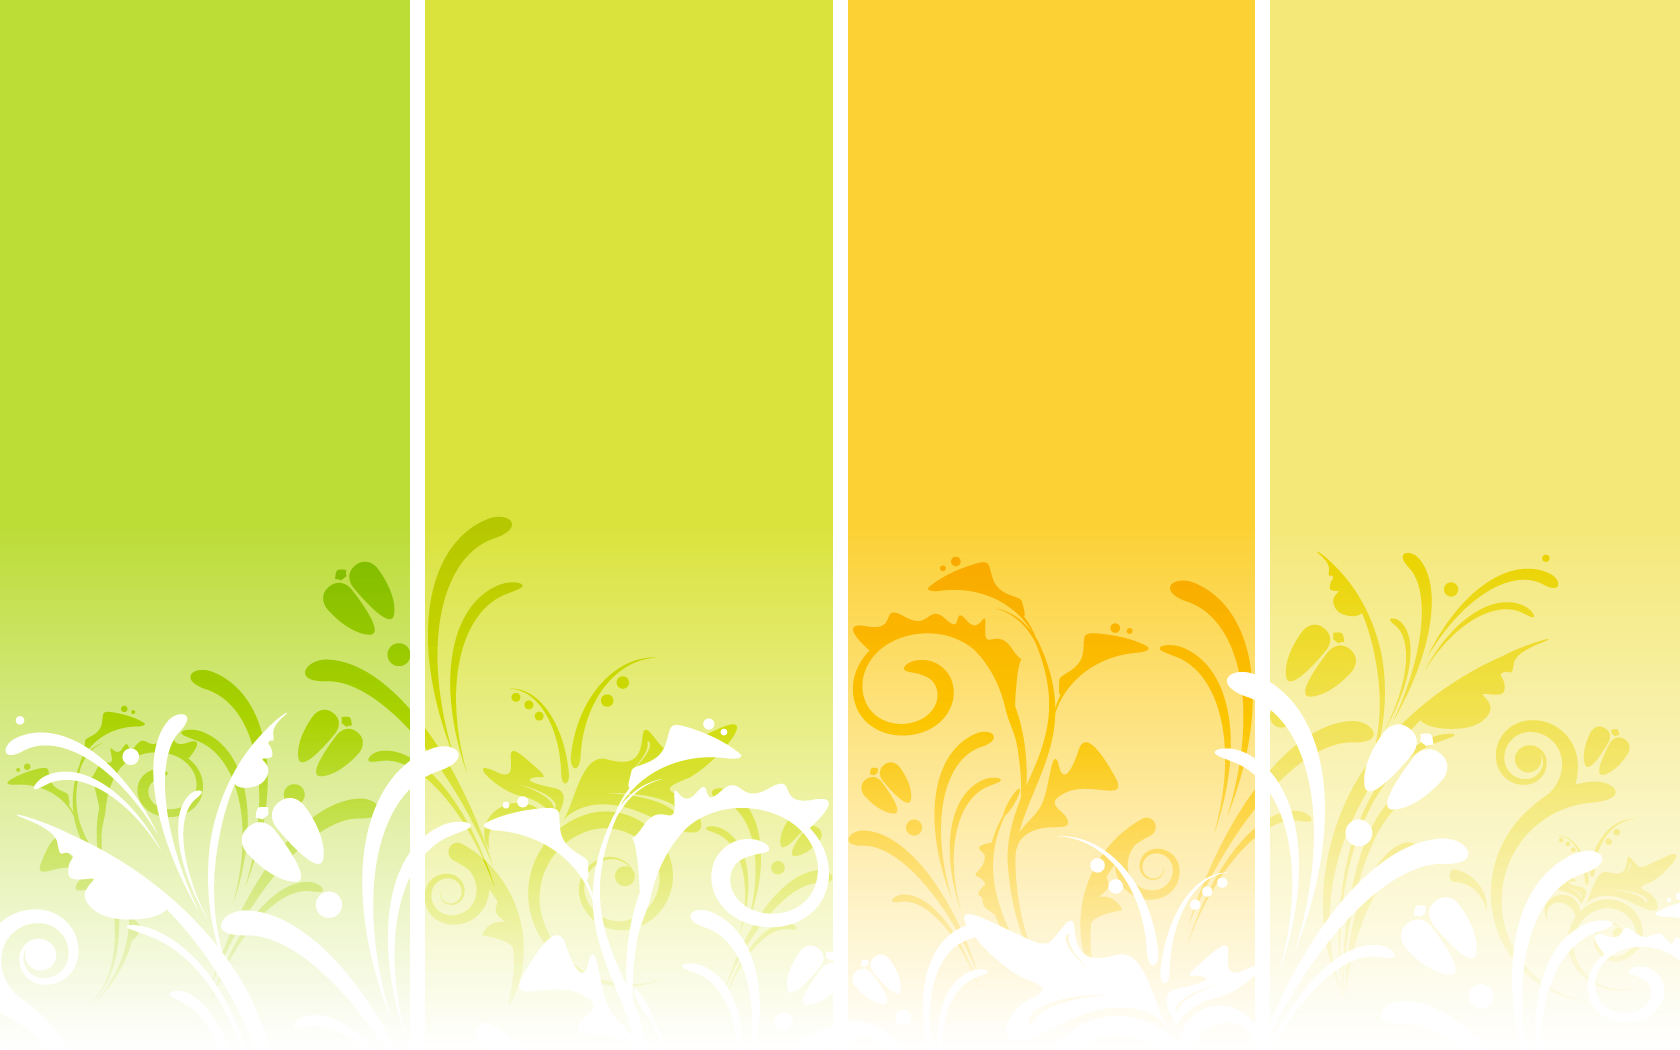 free vector backgrounds illustrator - Google Search | Digital ...